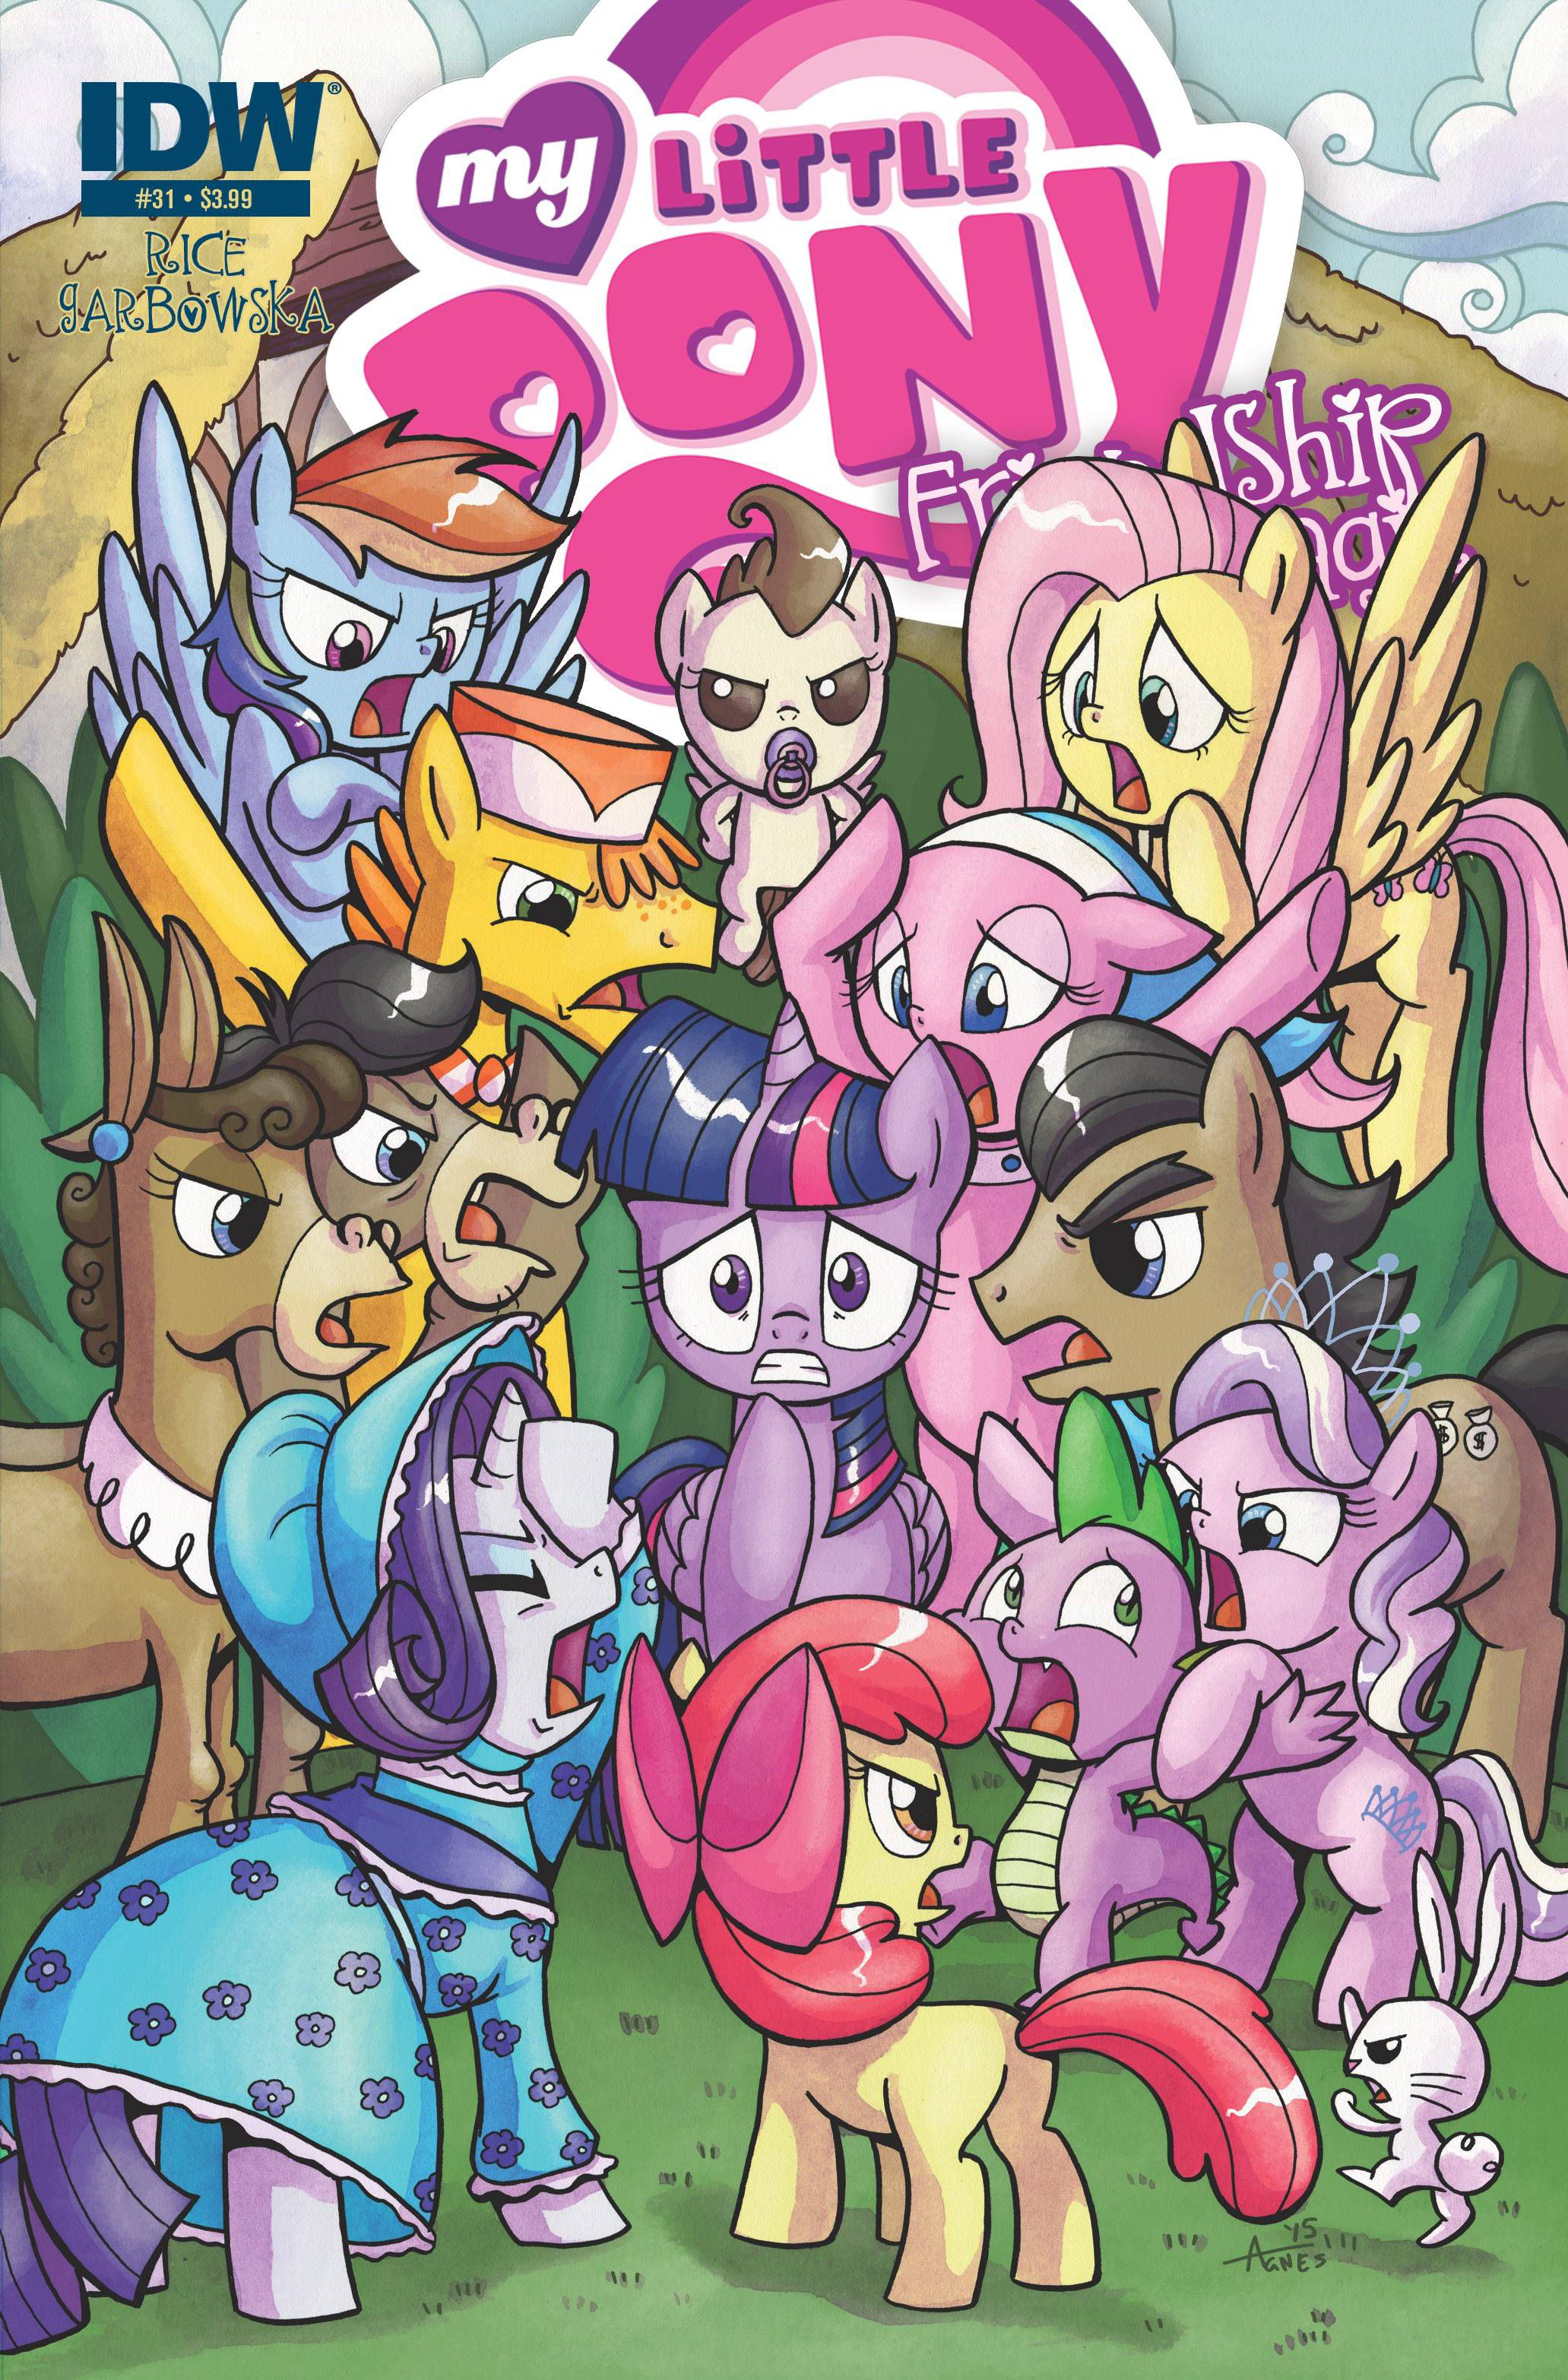 My Little Pony: Friendship Is Magic #31 (2015)